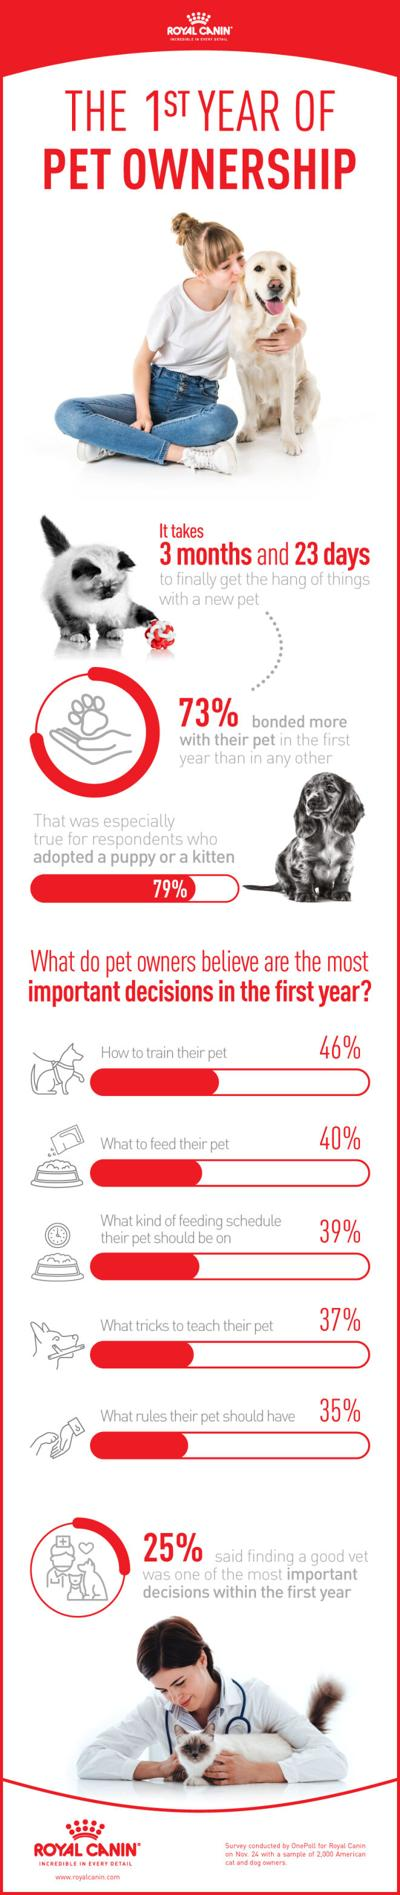 Royal Canin OnePoll survey